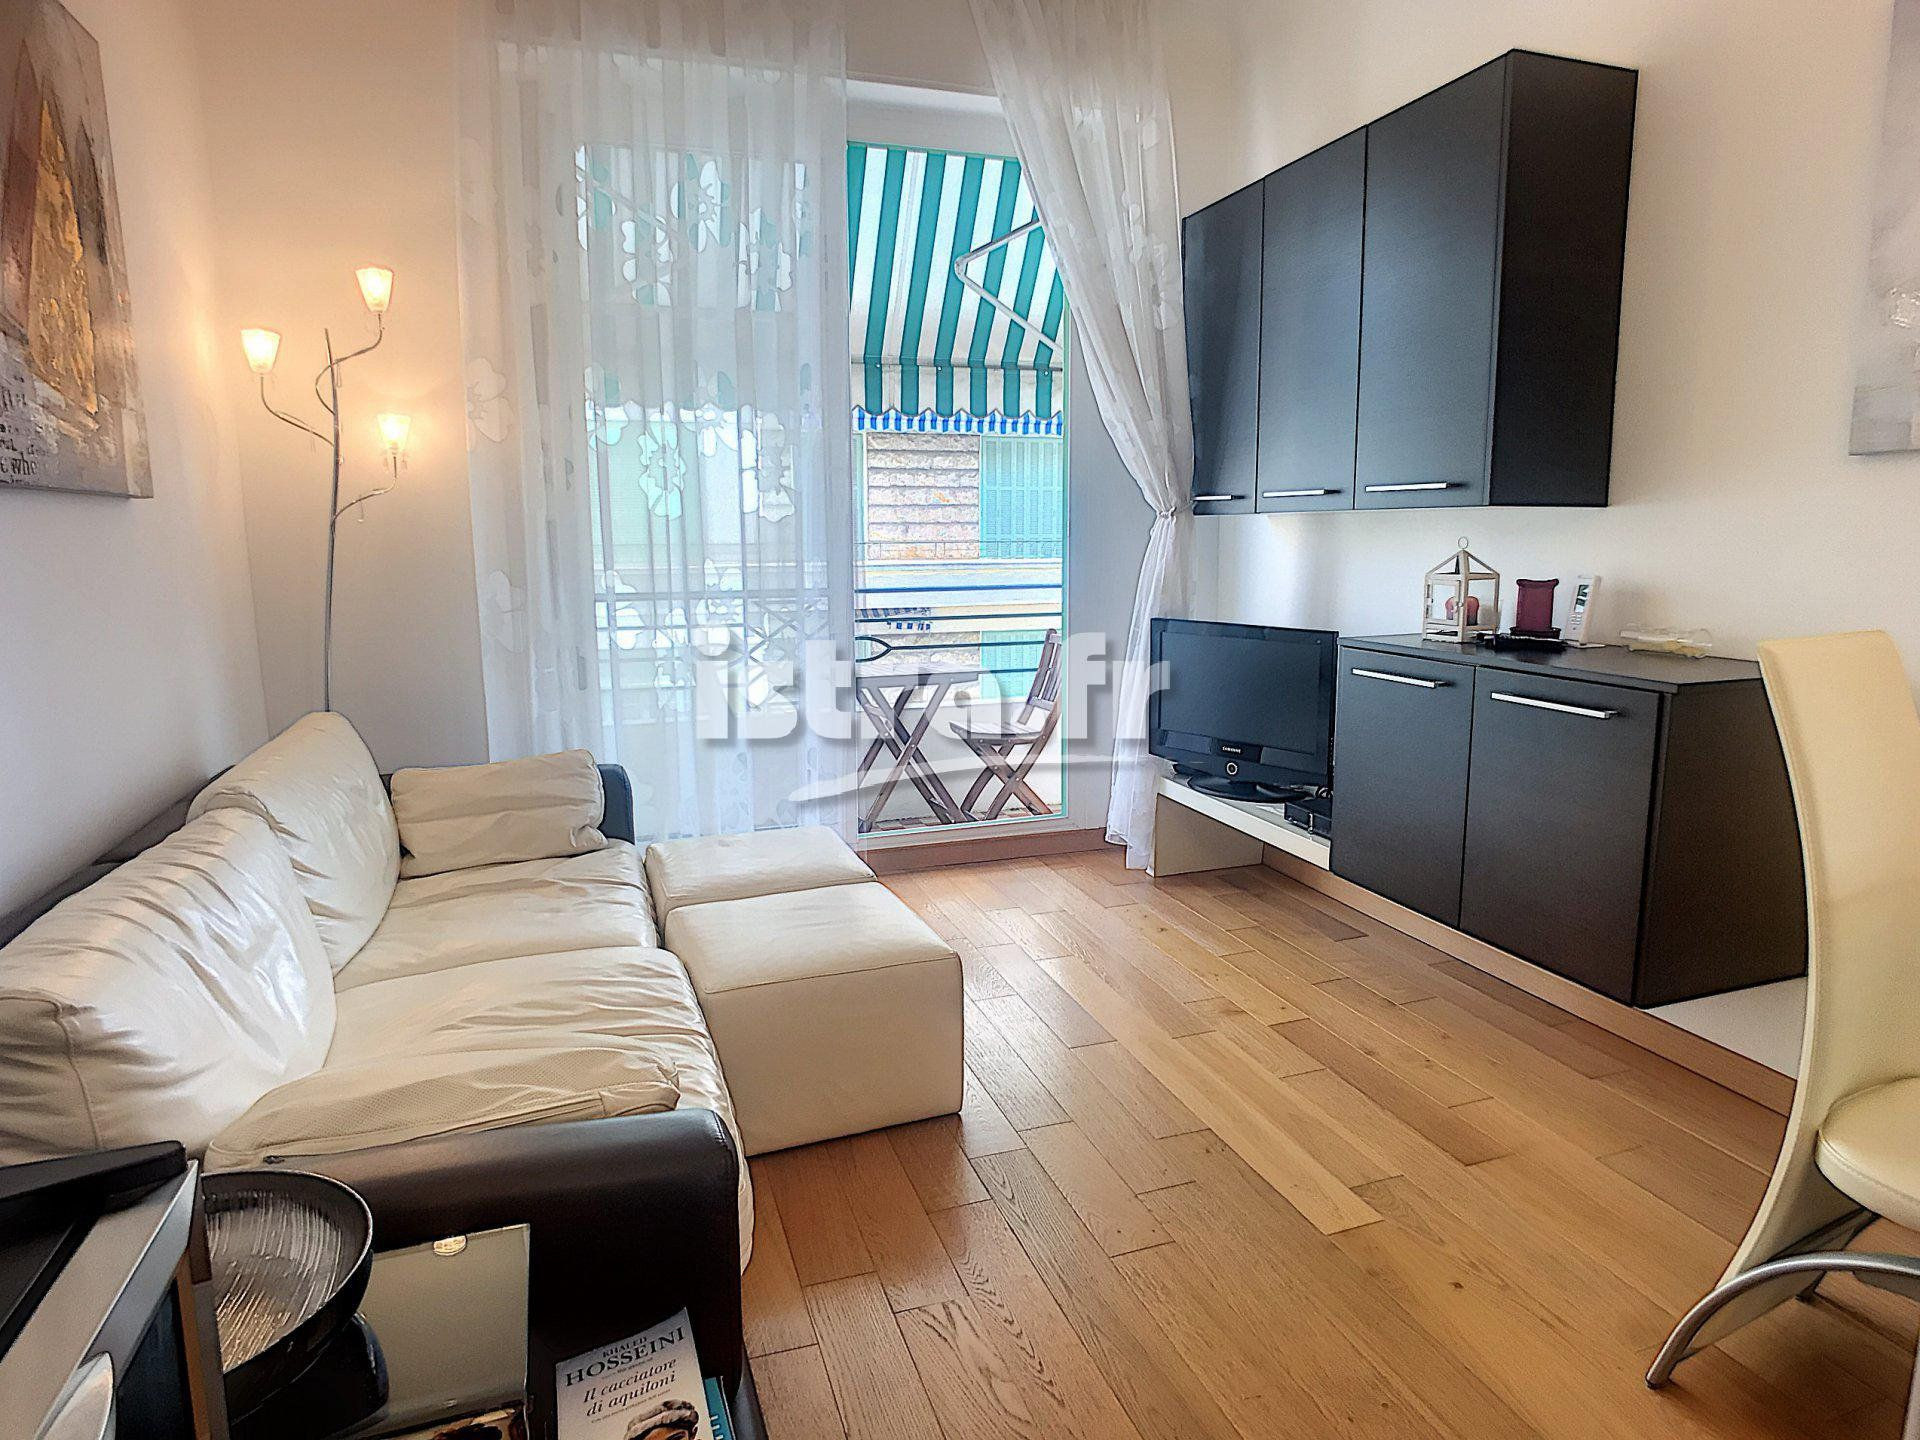 hardwood versus laminate flooring the truth of nice fleurs district lovely 2 bedroom apartment throughout 17452021845b21379fc78987 32893964 de8883ad1c 1920